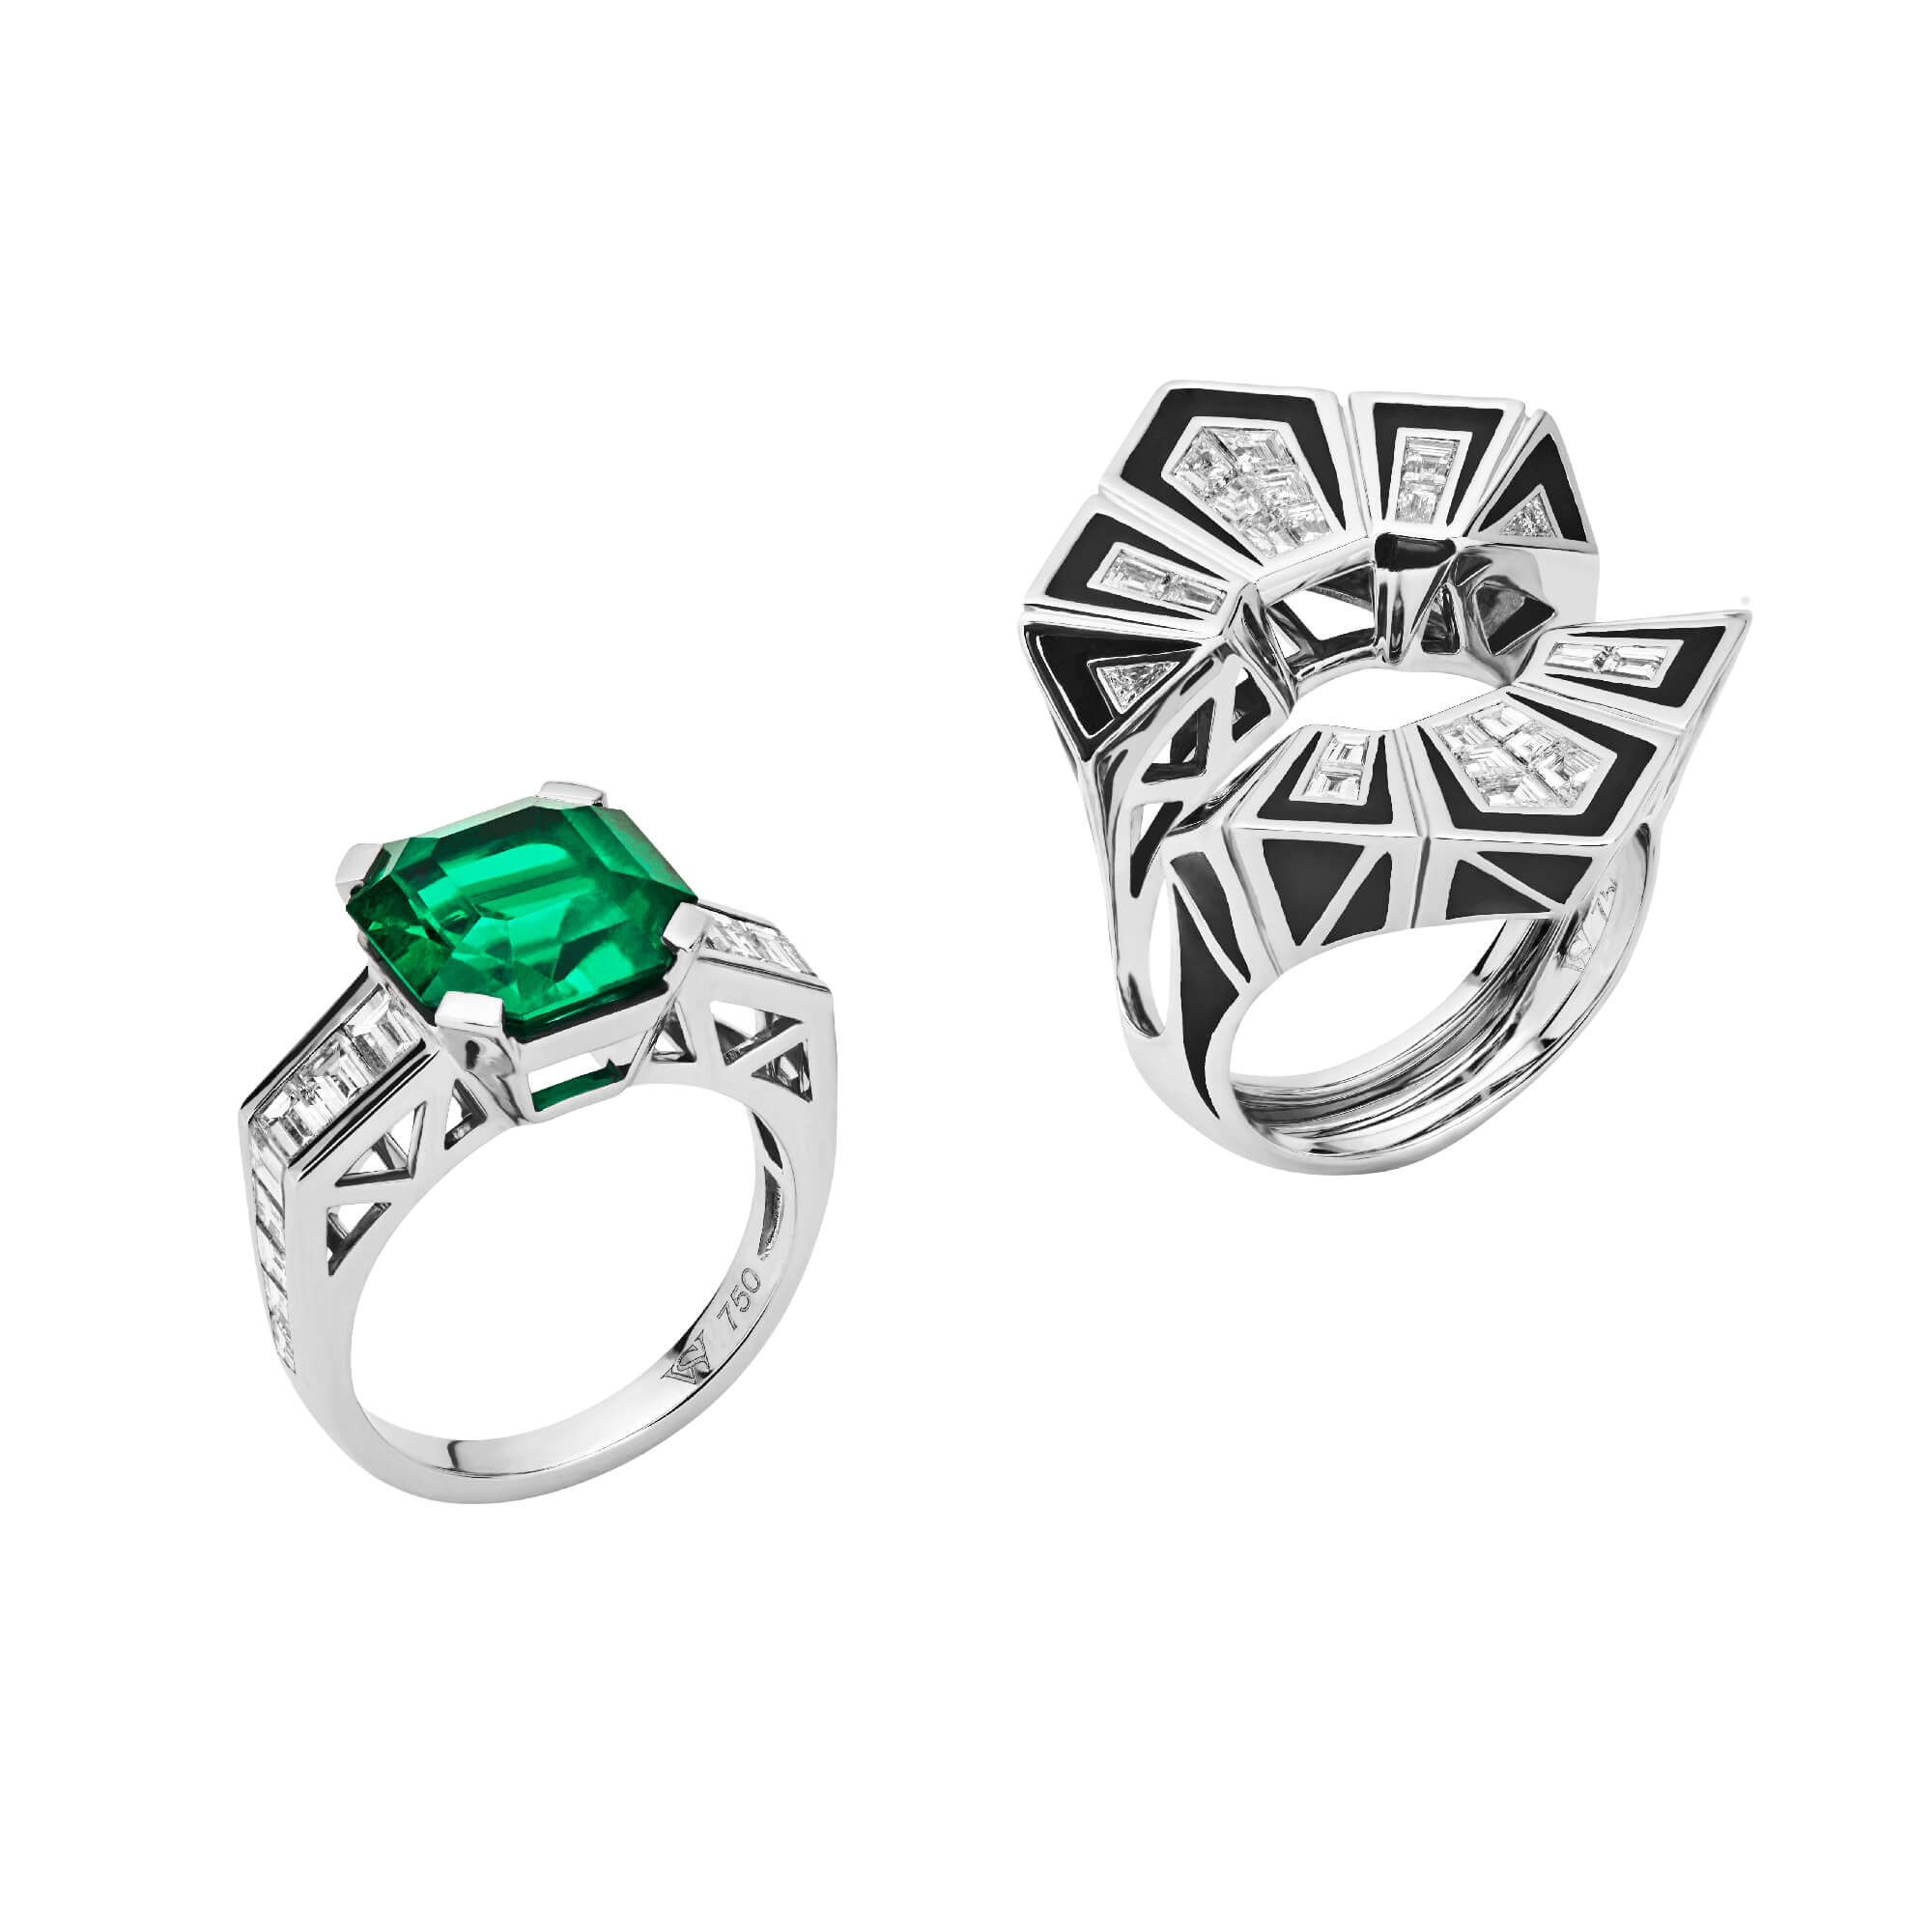 Couture Enamel Emerald Cocktail Ring - Image 1 | Dynamite